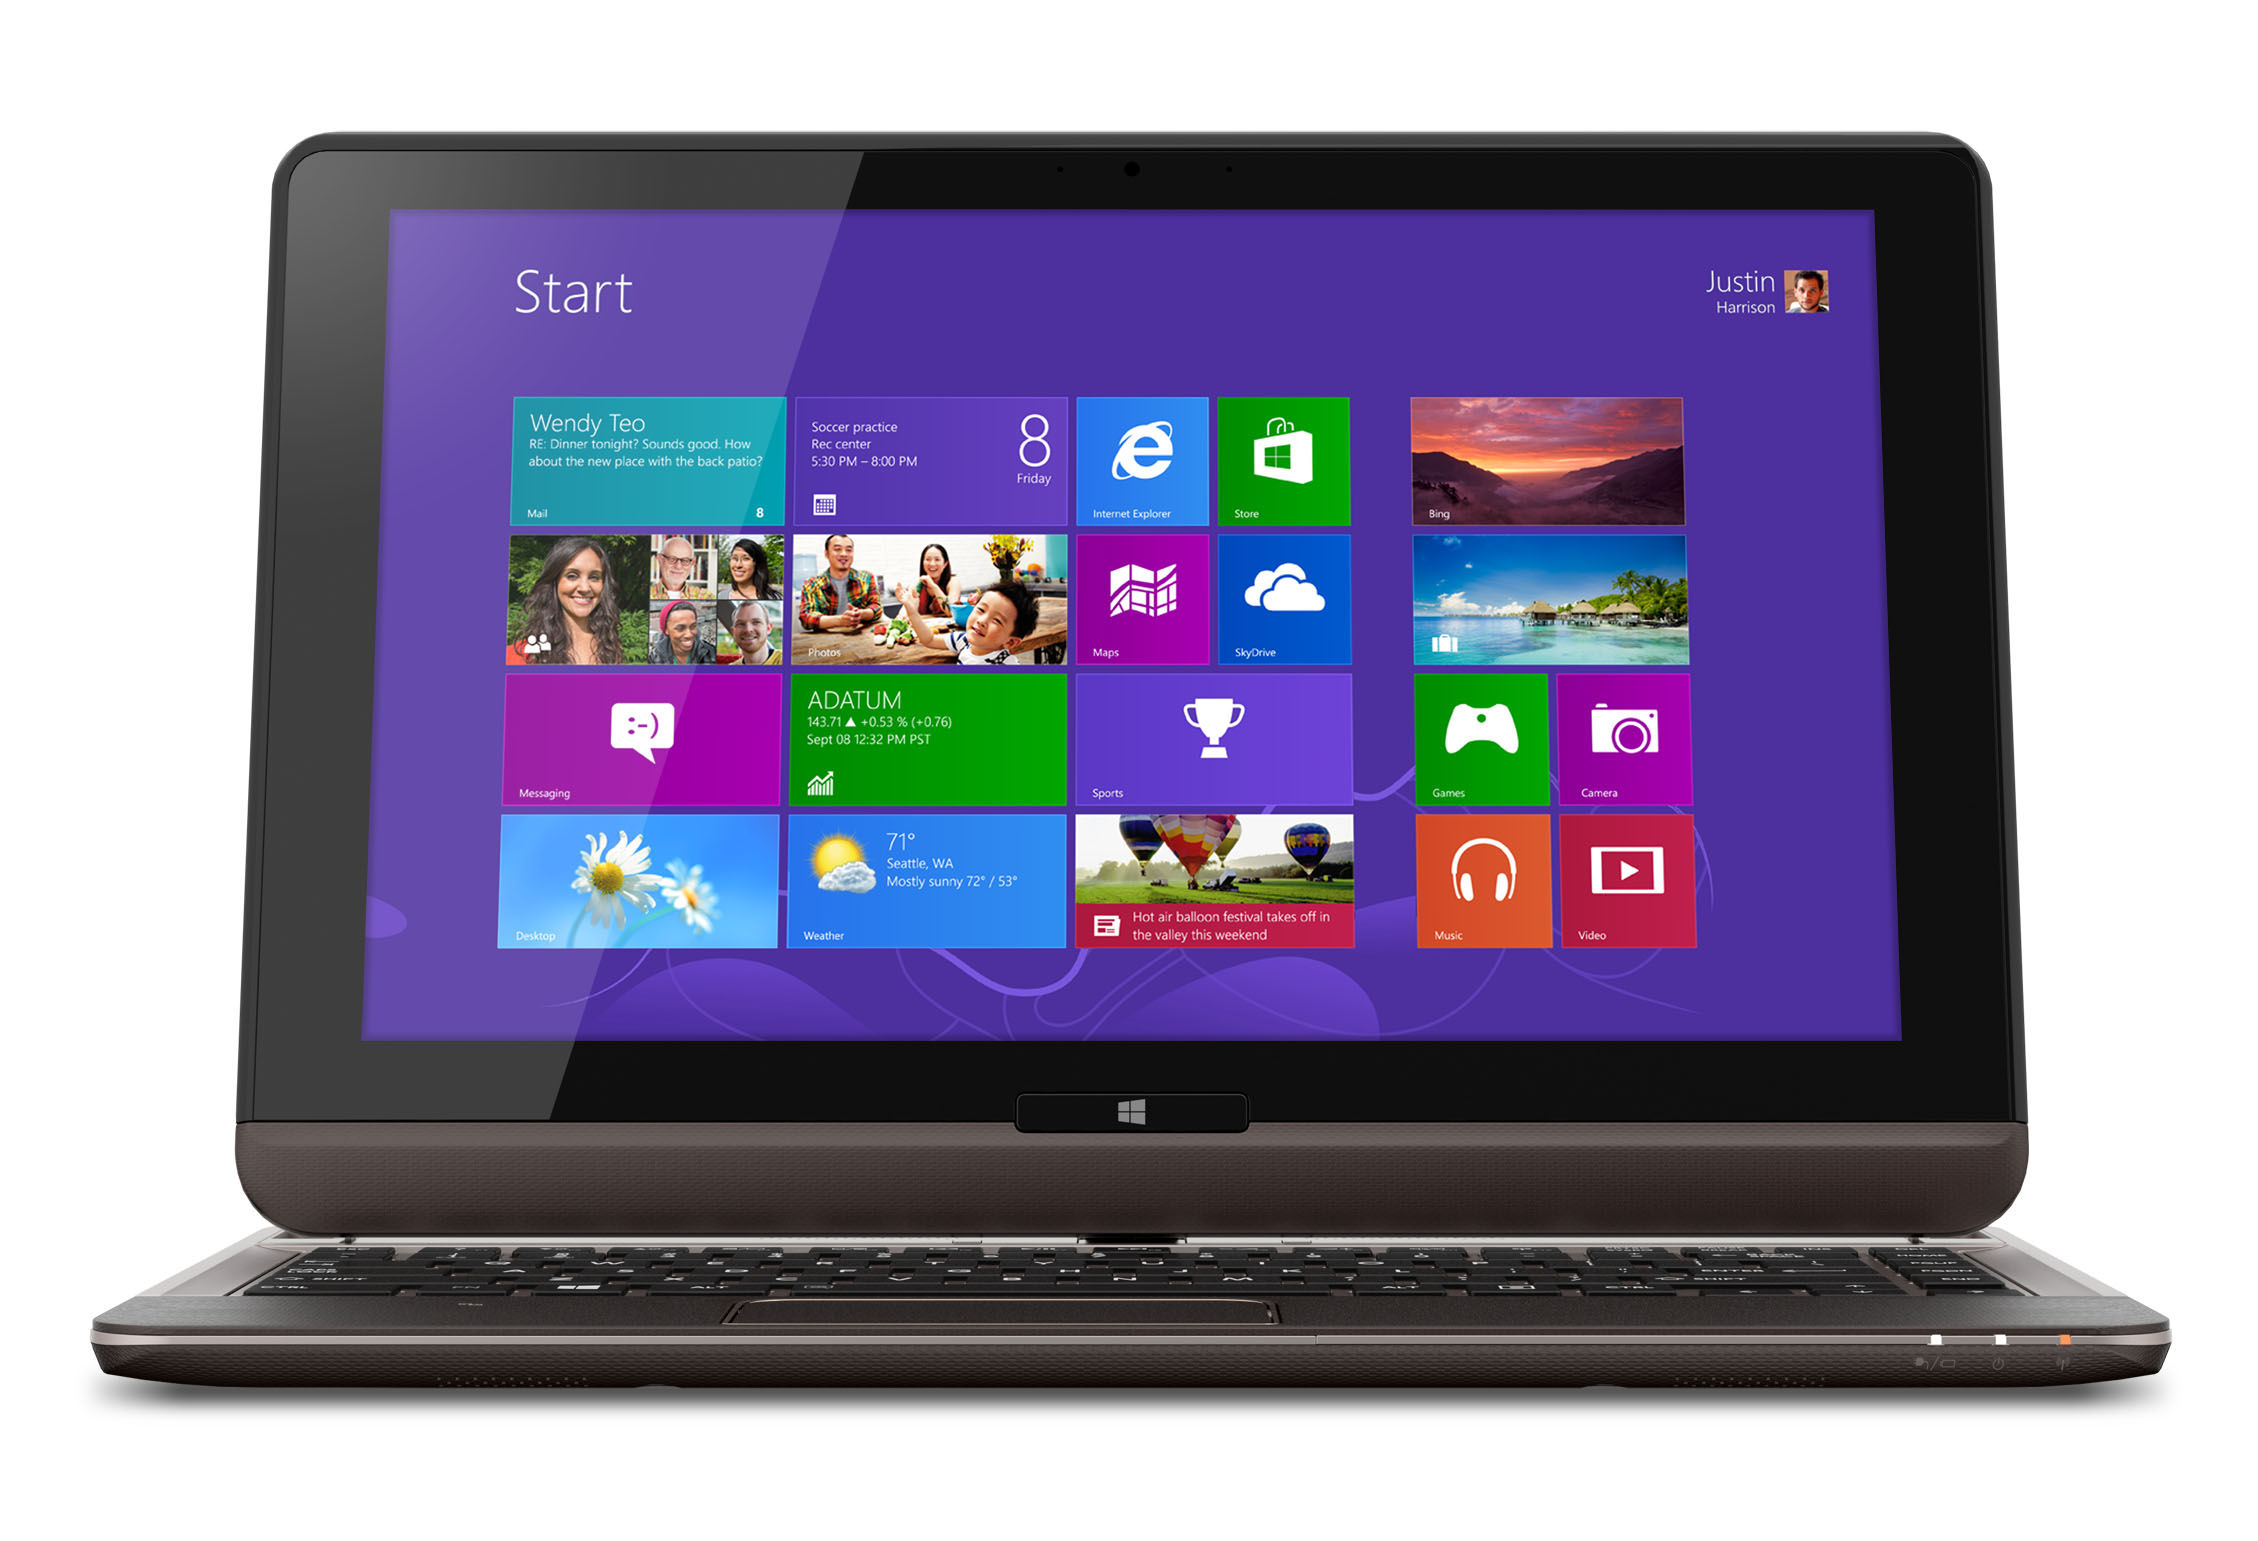 Toshiba's Satellite U925t convertible is 19.8mm thin and weighs 1.45kg, or 3.2 pounds.